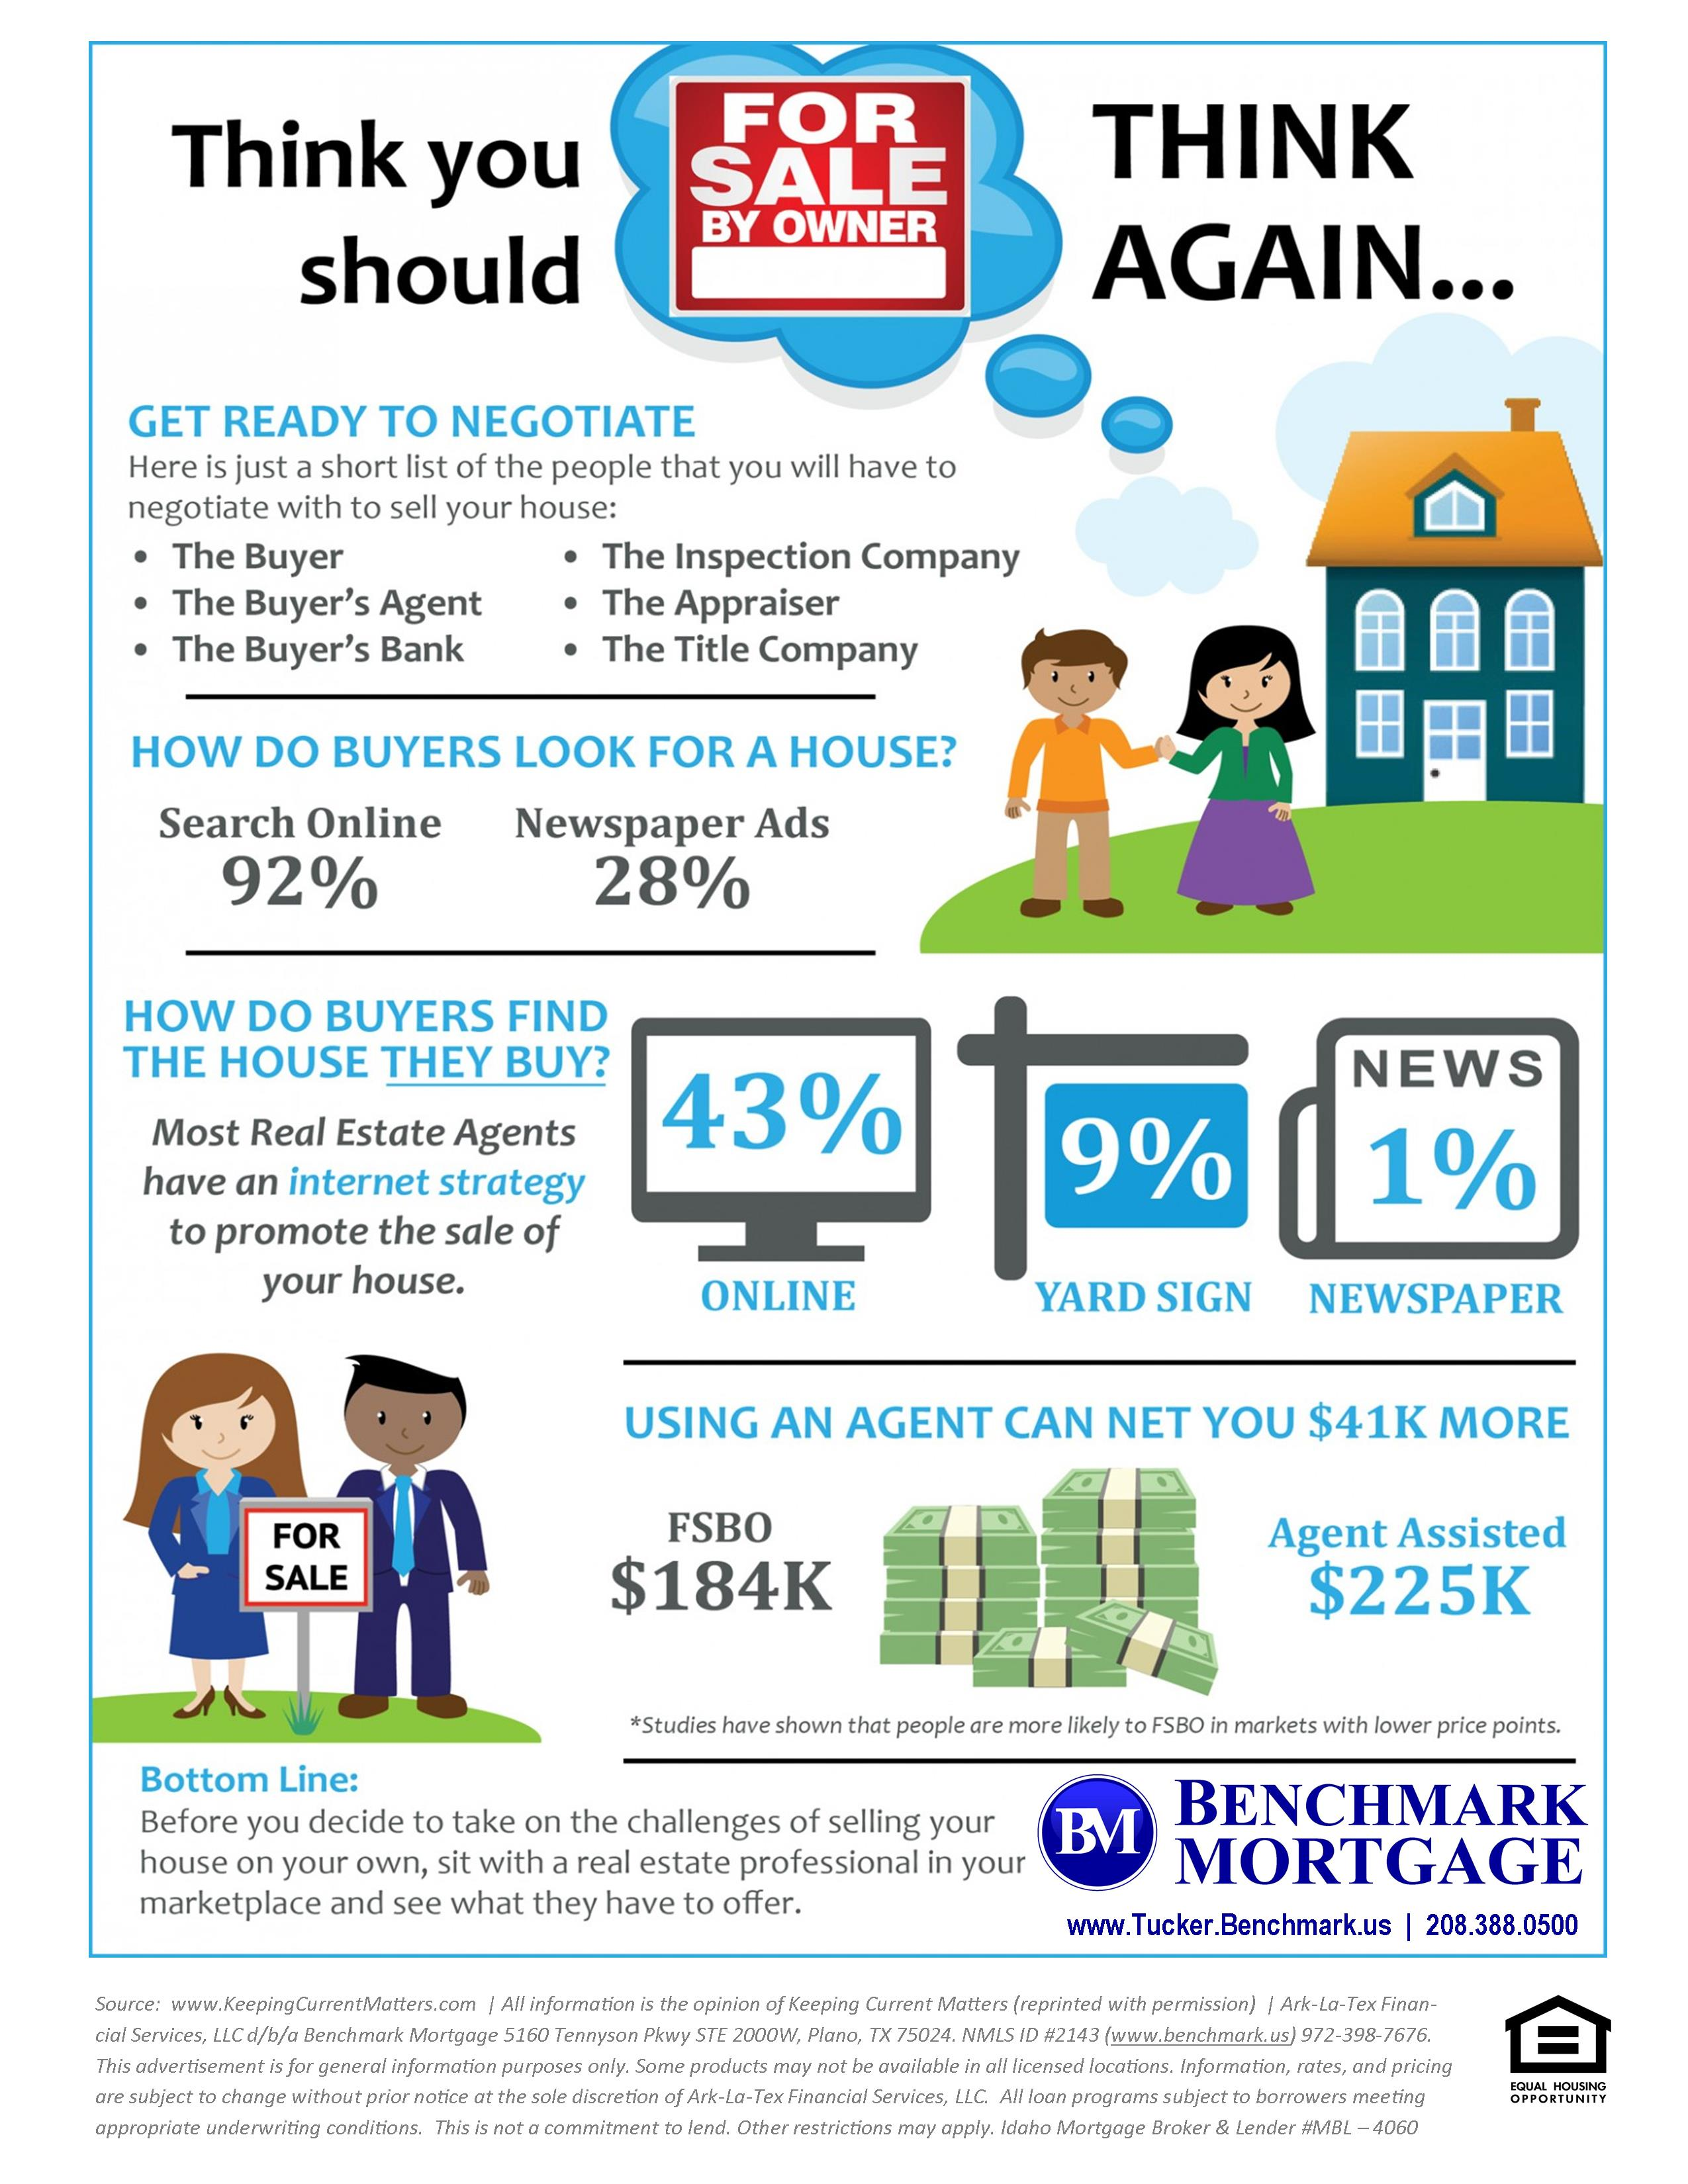 FSBO-Think-Again-Infographic